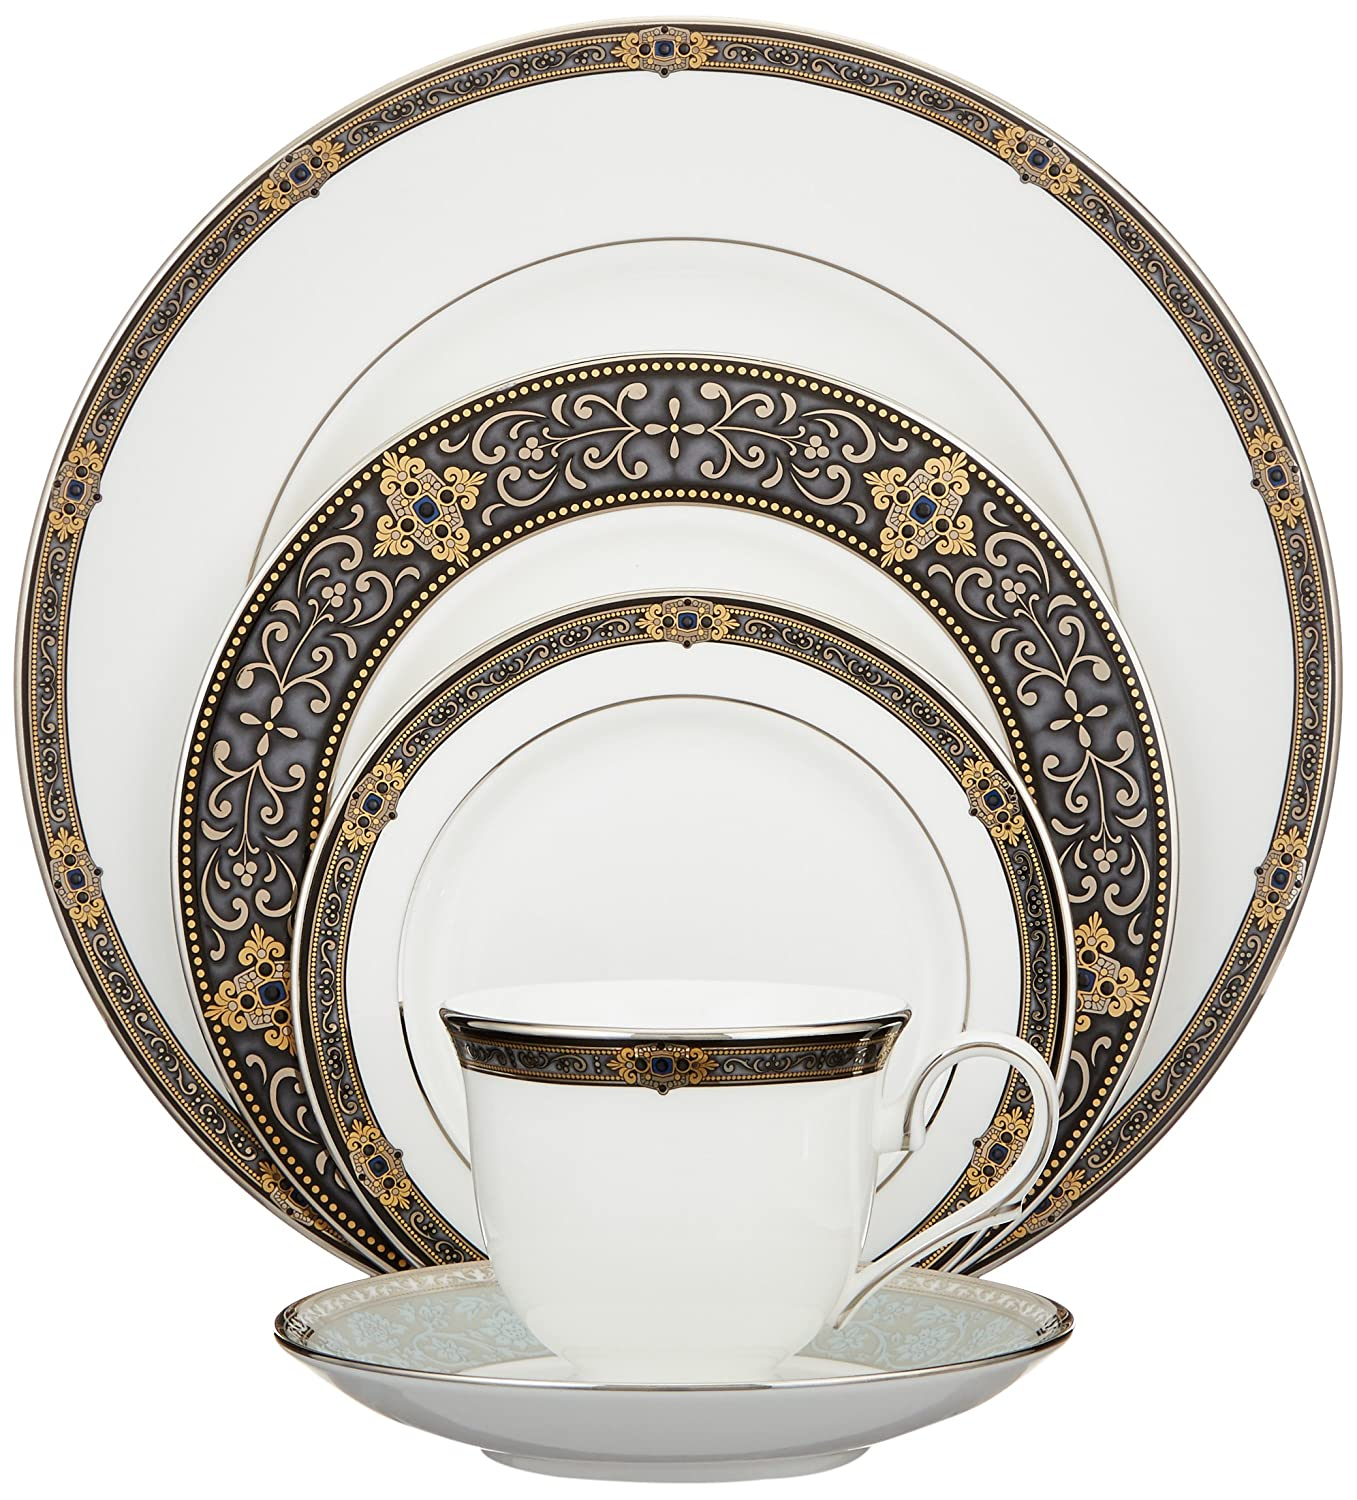 Amazon.com | Lenox Vintage Jewel Platinum-Banded Bone China 5-Piece Place Setting Service for 1 Lenox Vintage Jewel China Plates  sc 1 st  Amazon.com & Amazon.com | Lenox Vintage Jewel Platinum-Banded Bone China 5-Piece ...